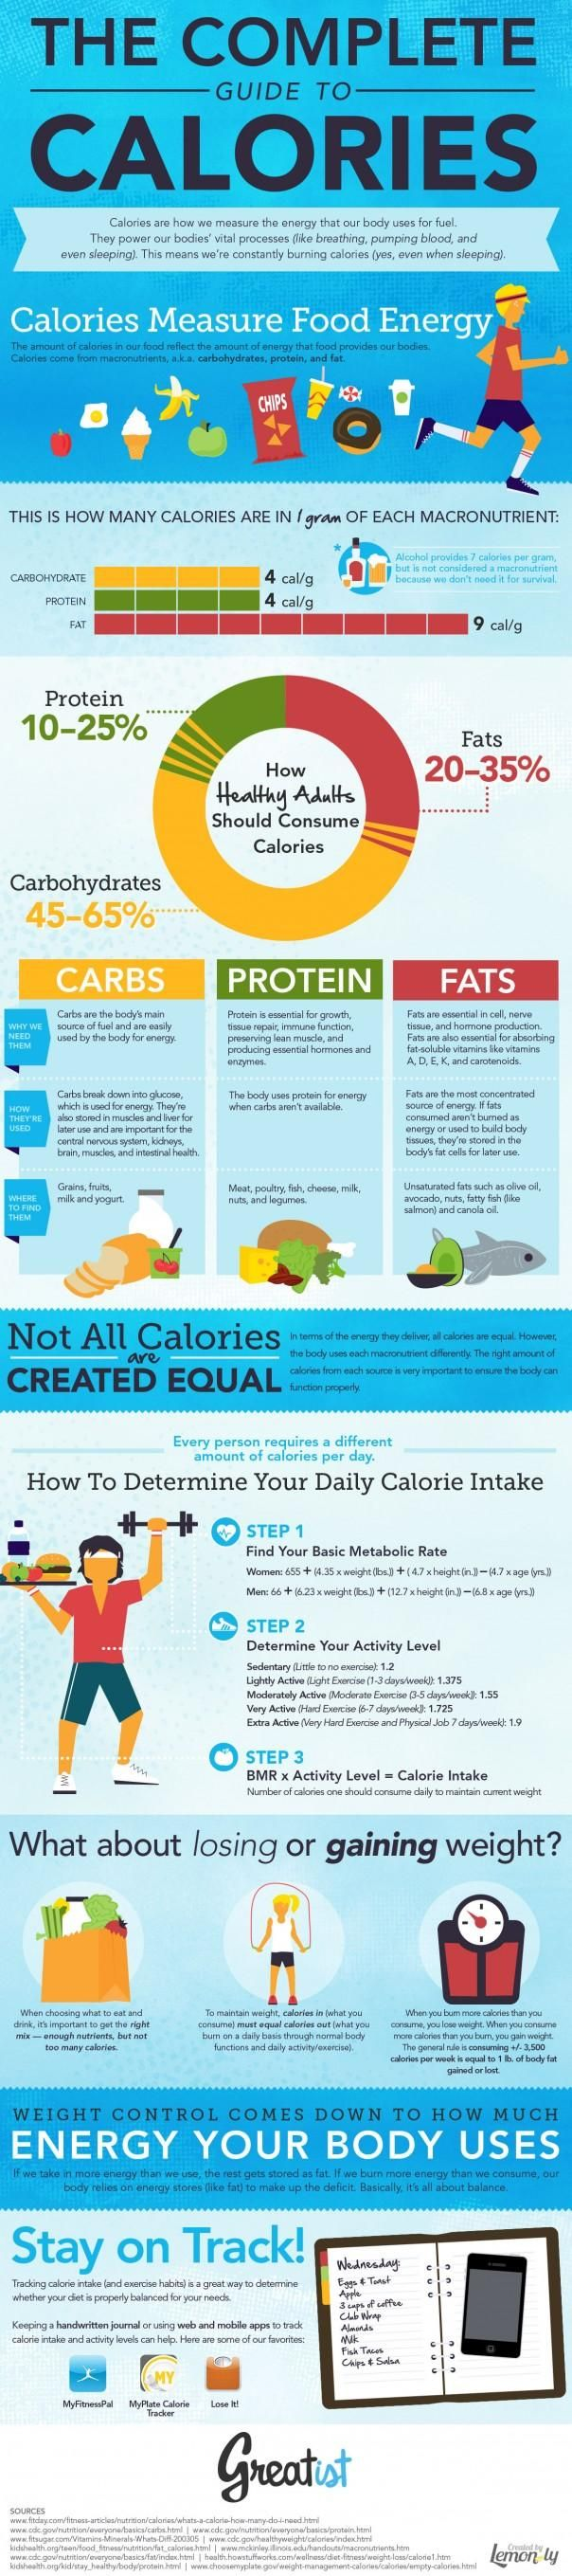 The Complete Guide to Calories [Infographic] | Greatist